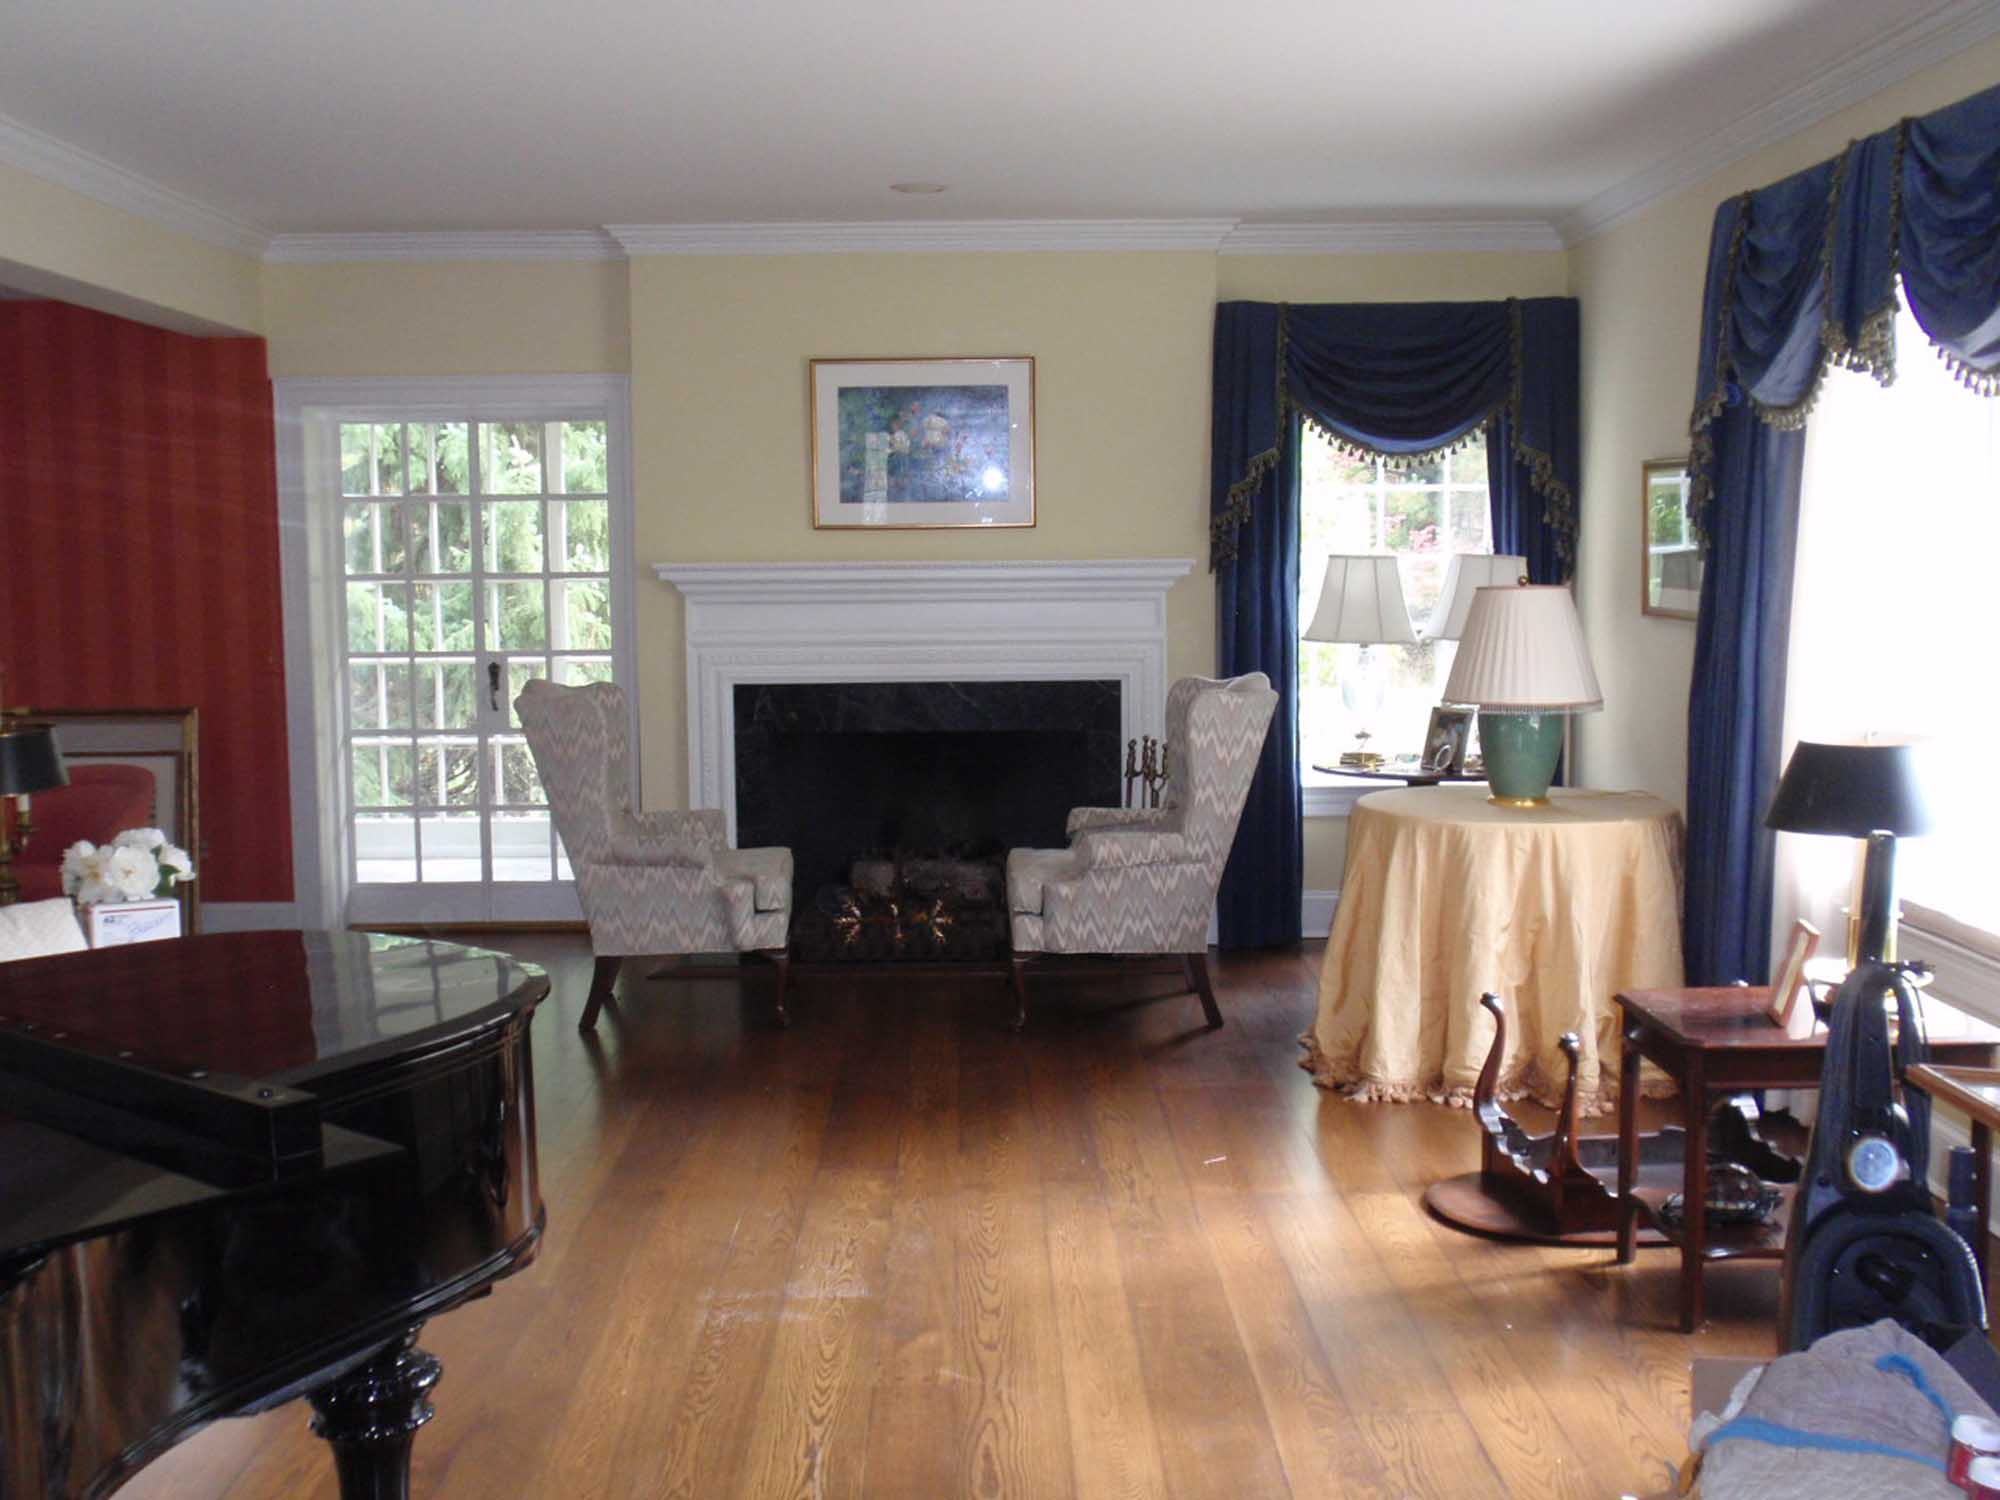 Living room with blue curtains and fireplace